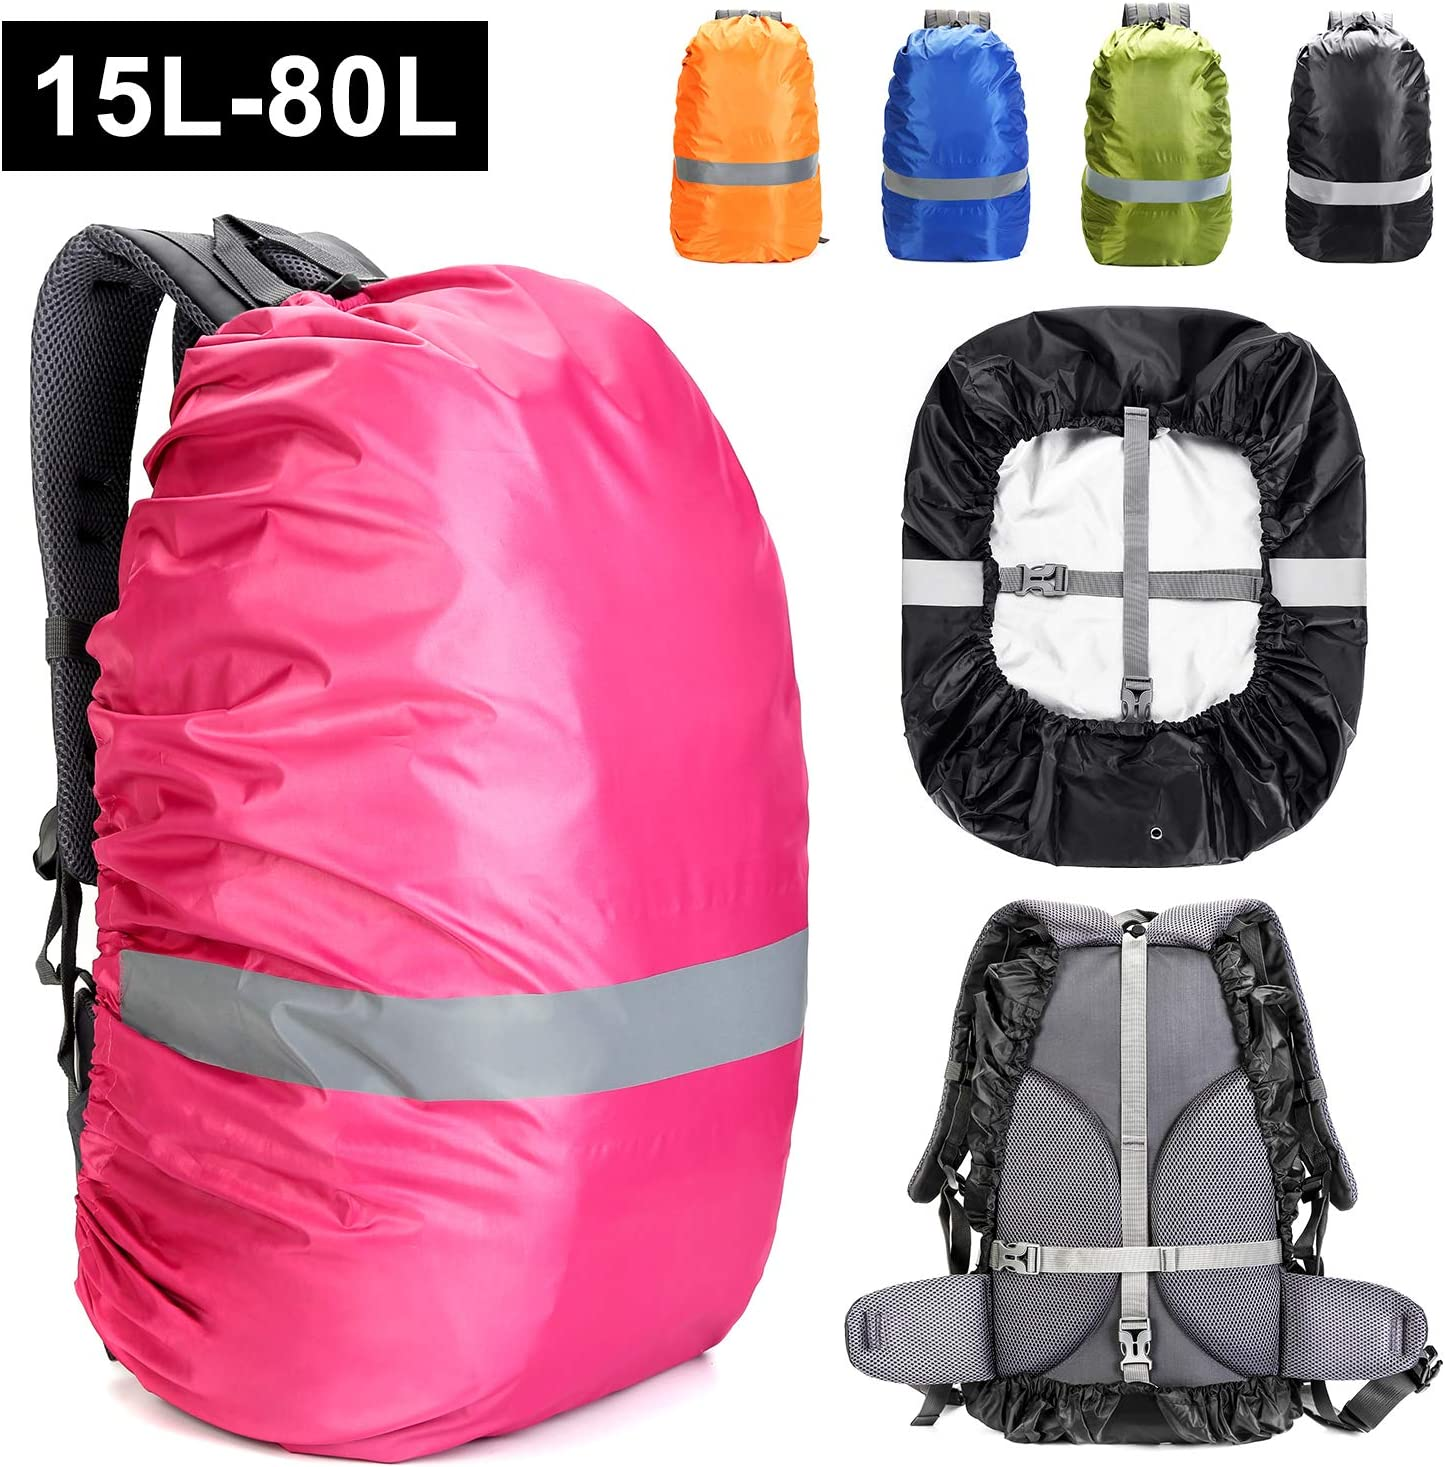 AmHoo Waterproof Backpack Rain Cover(15 80L),Reflective Strip Design,with Anti Slip Cross Buckle Strap,Upgraded Sliver Coating Reinforced Inner Layer